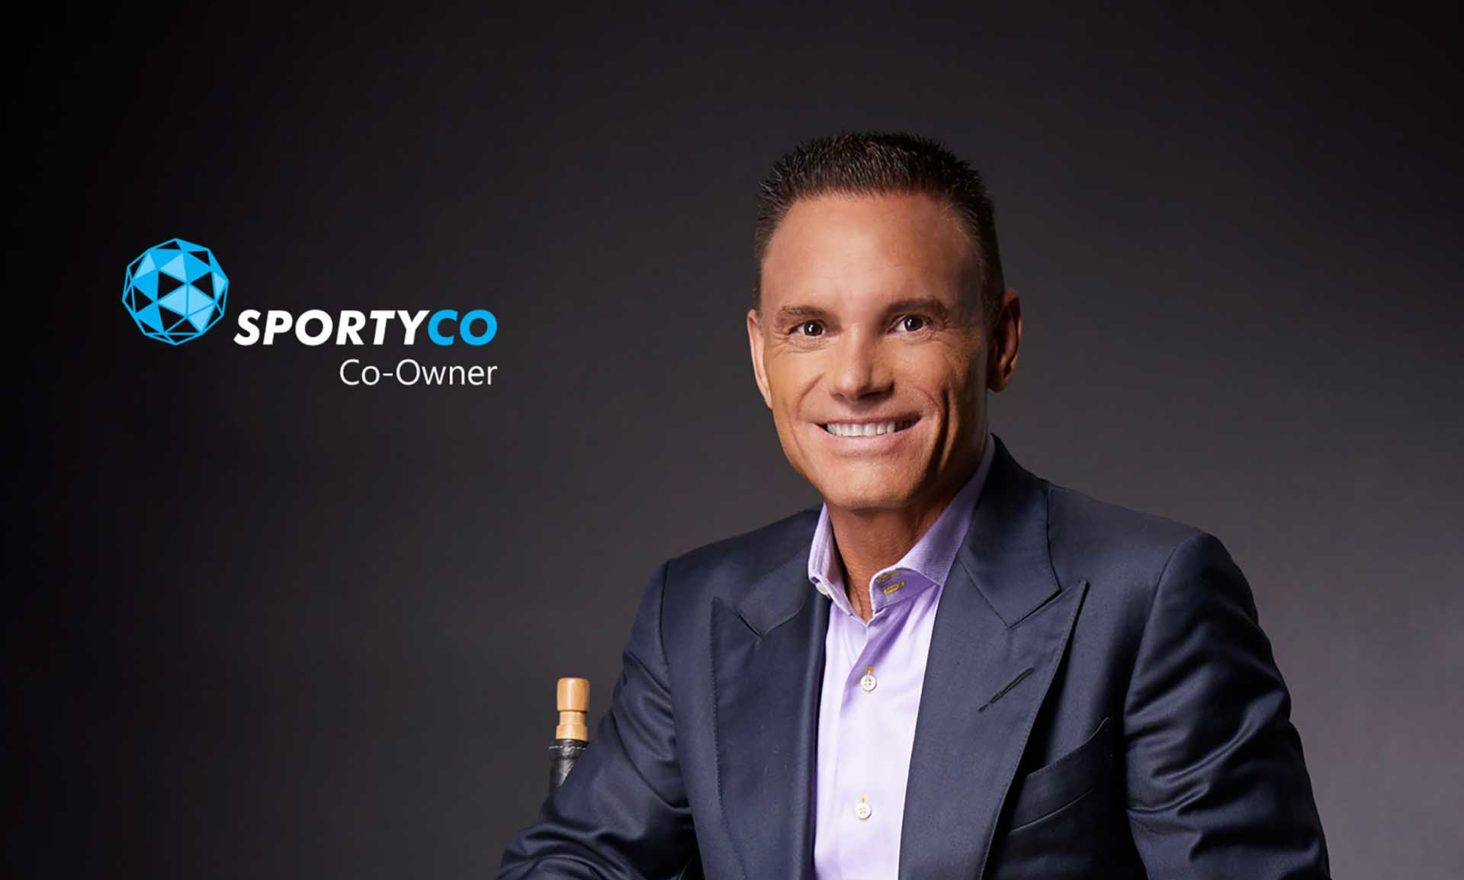 SportyCo Ups Their Game with the Addition of Kevin Harrington